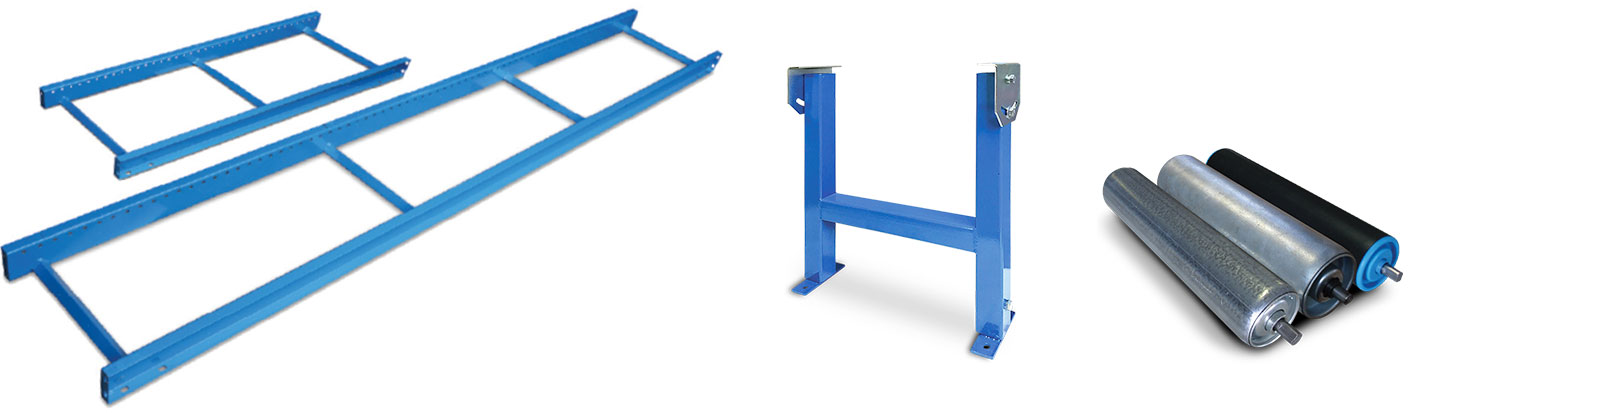 Gravity conveyor packages - parts